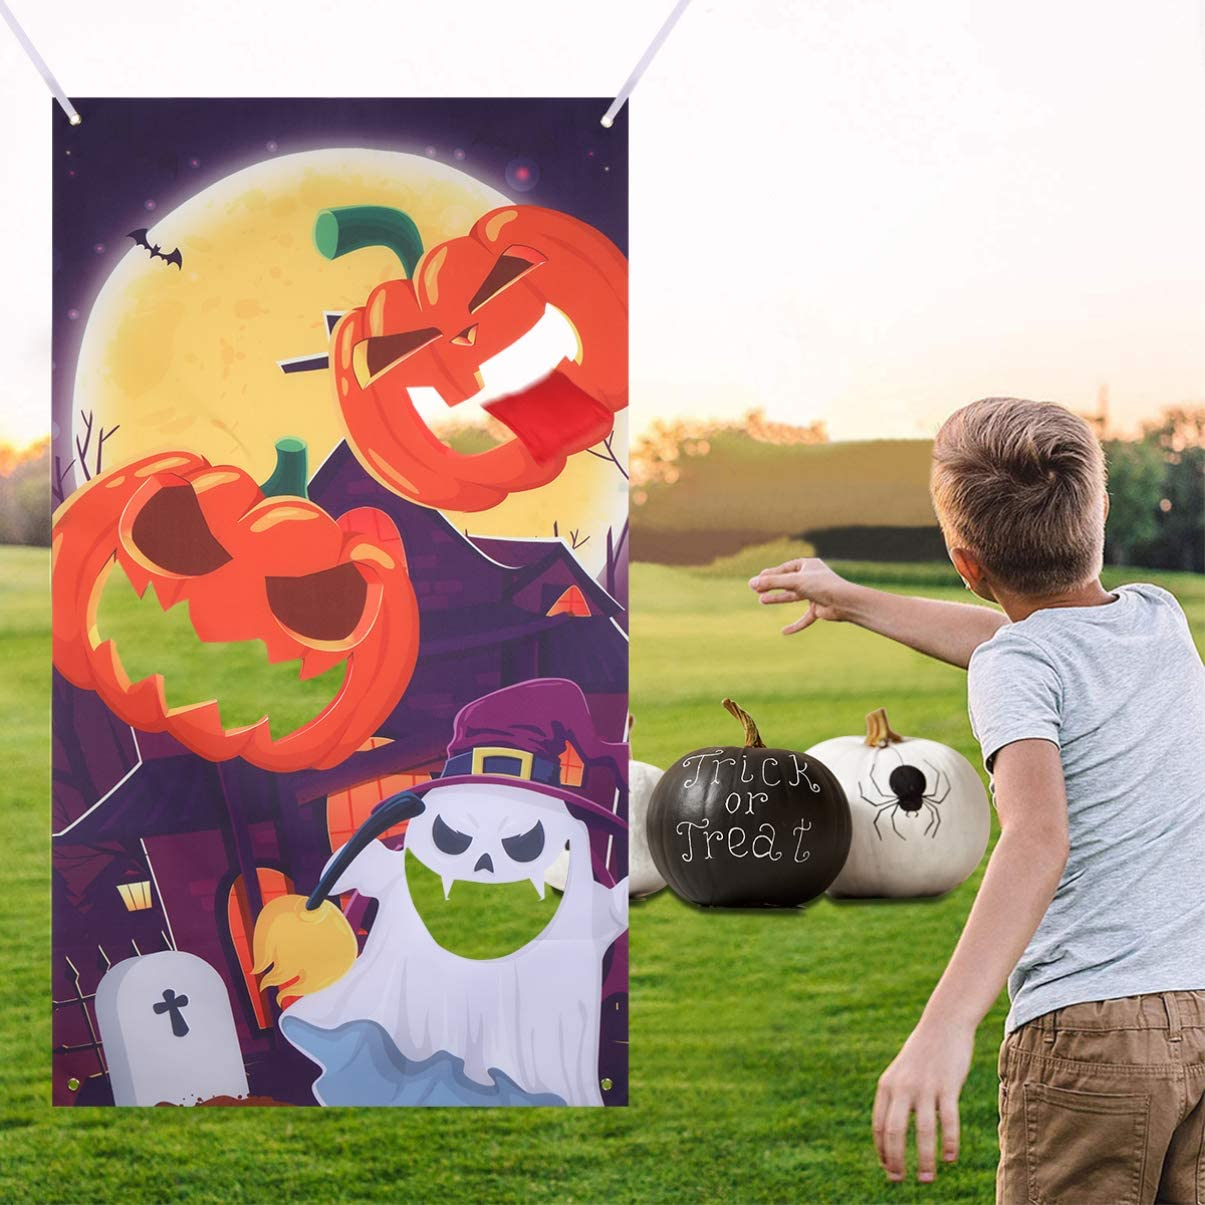 Halloween Toss Game Banner with 3 Bean Bags for Kids Adults Indoor Outdoor Sports Fun Party Supplies Decoration